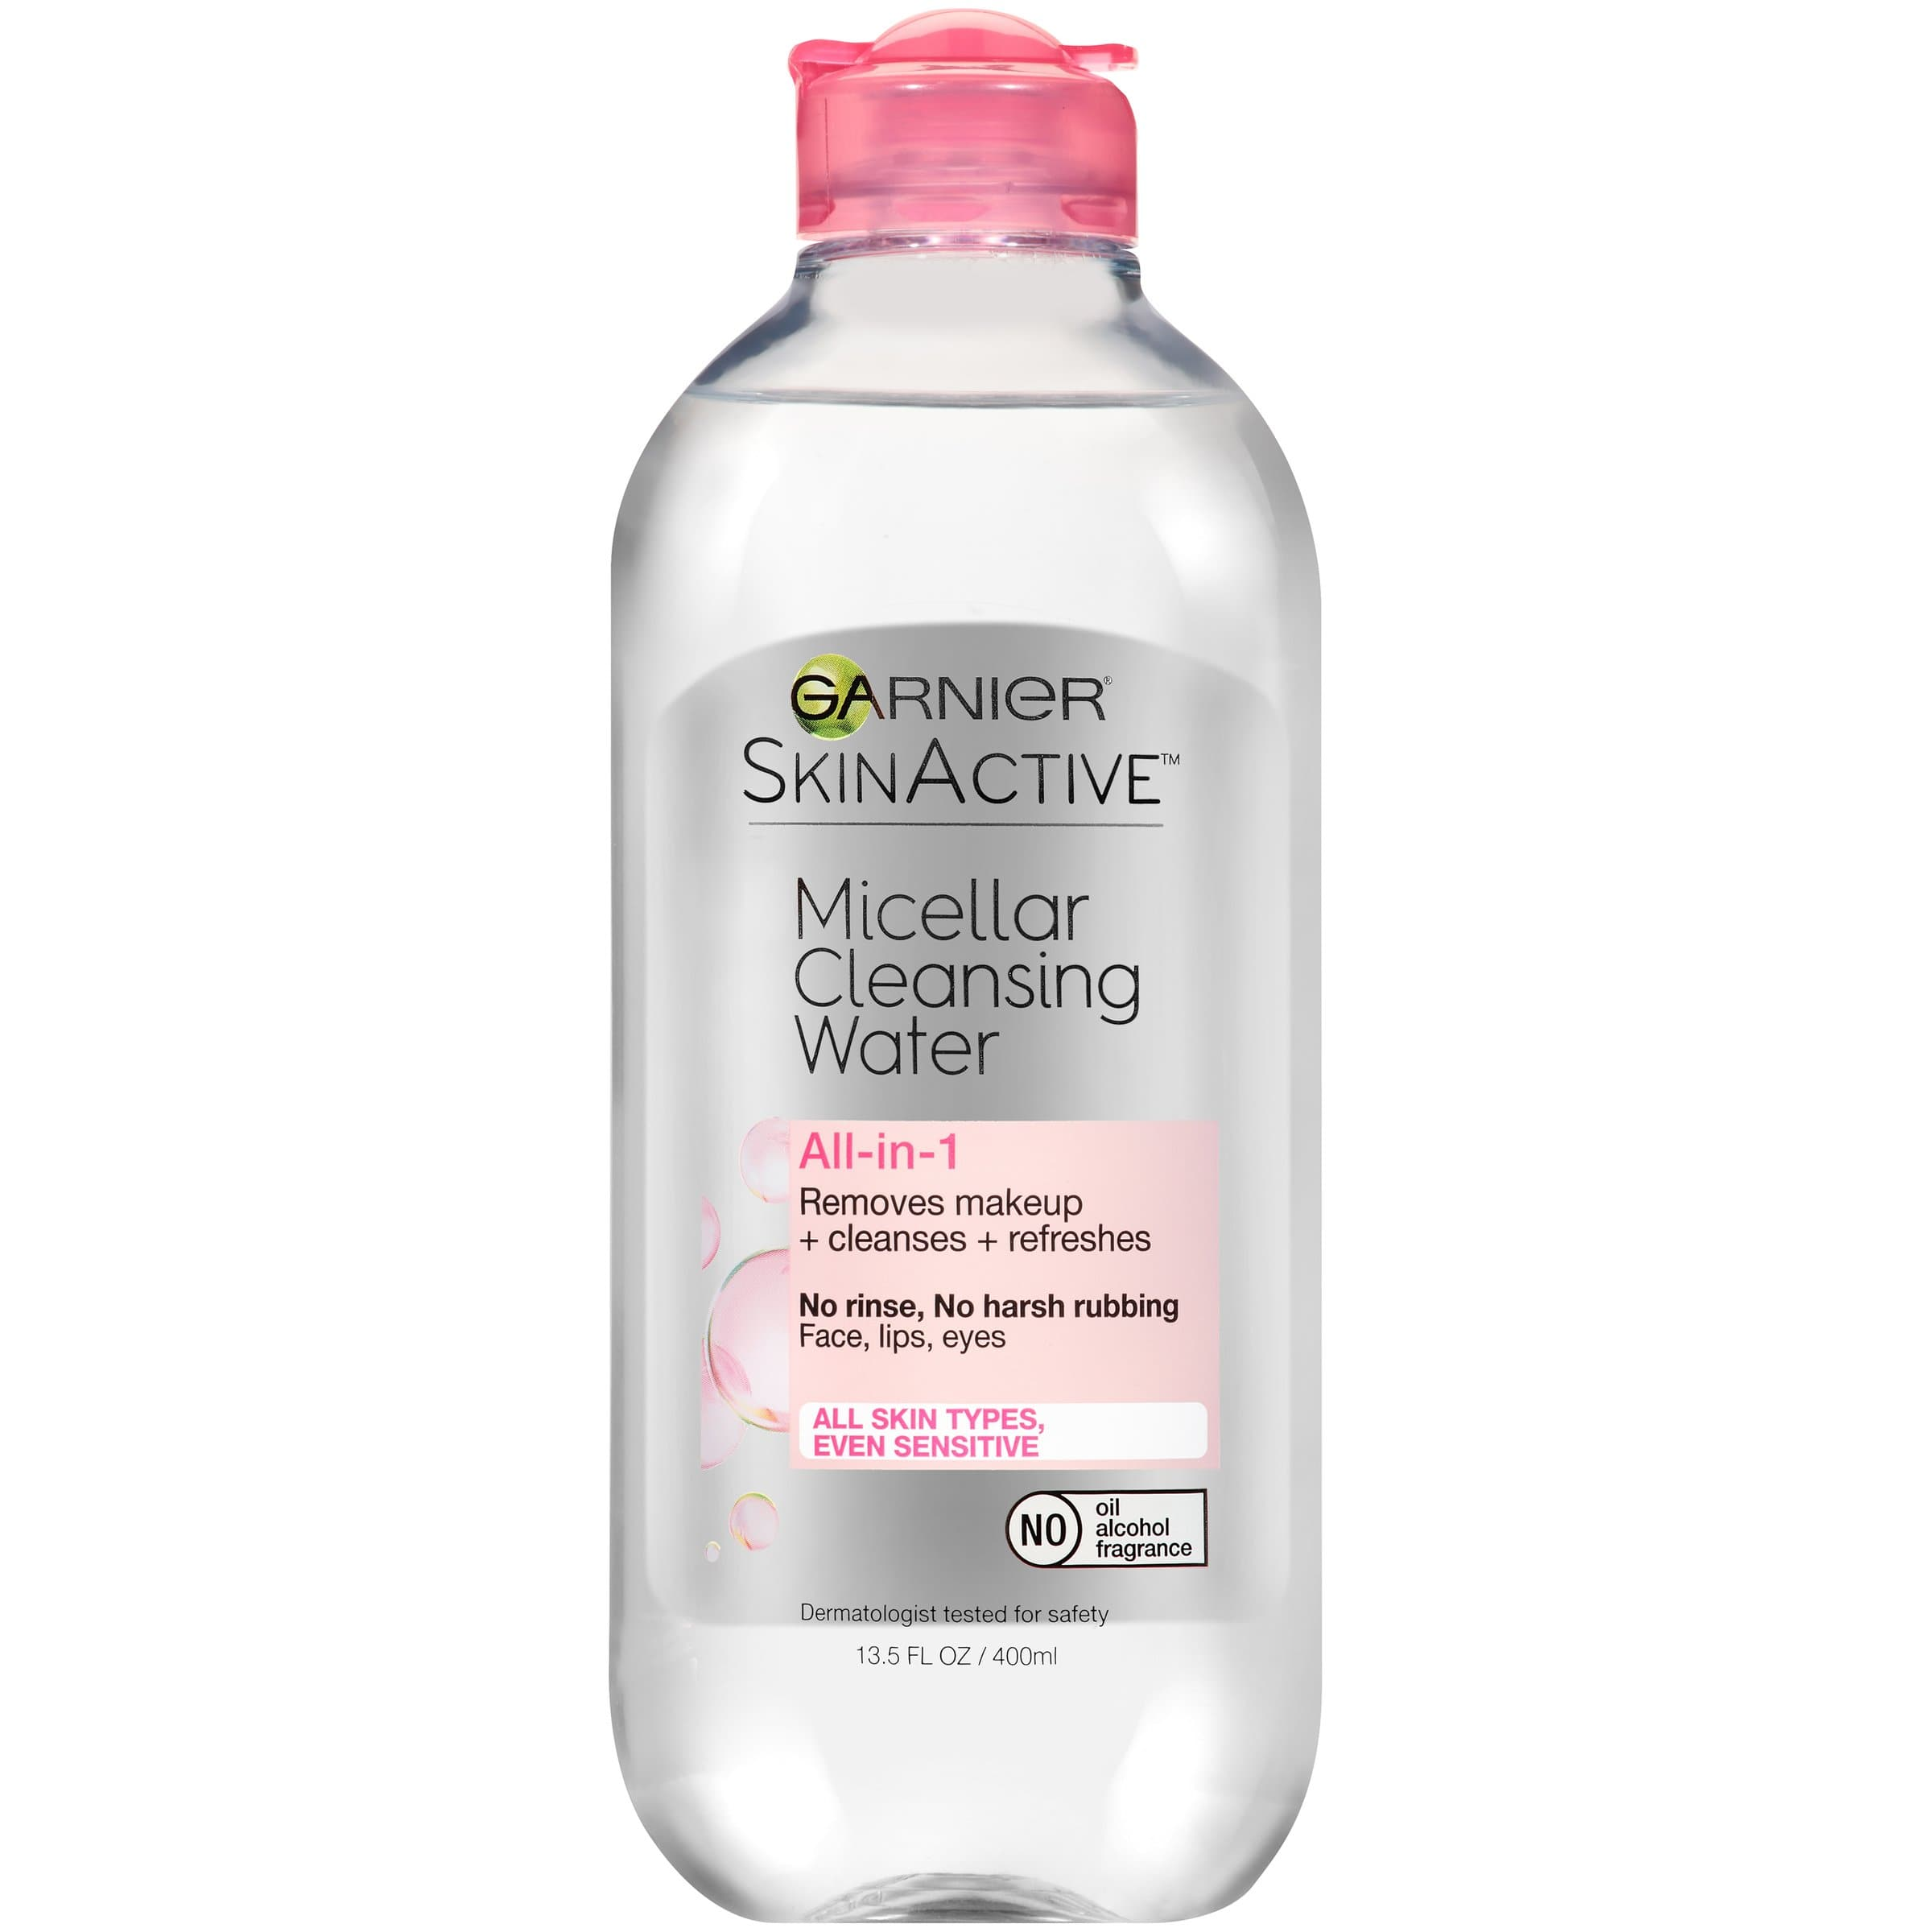 Garnier SkinActive Micellar Cleansing Water, For All Skin Types, 13.5 fl. oz. - FLJ CORPORATIONS